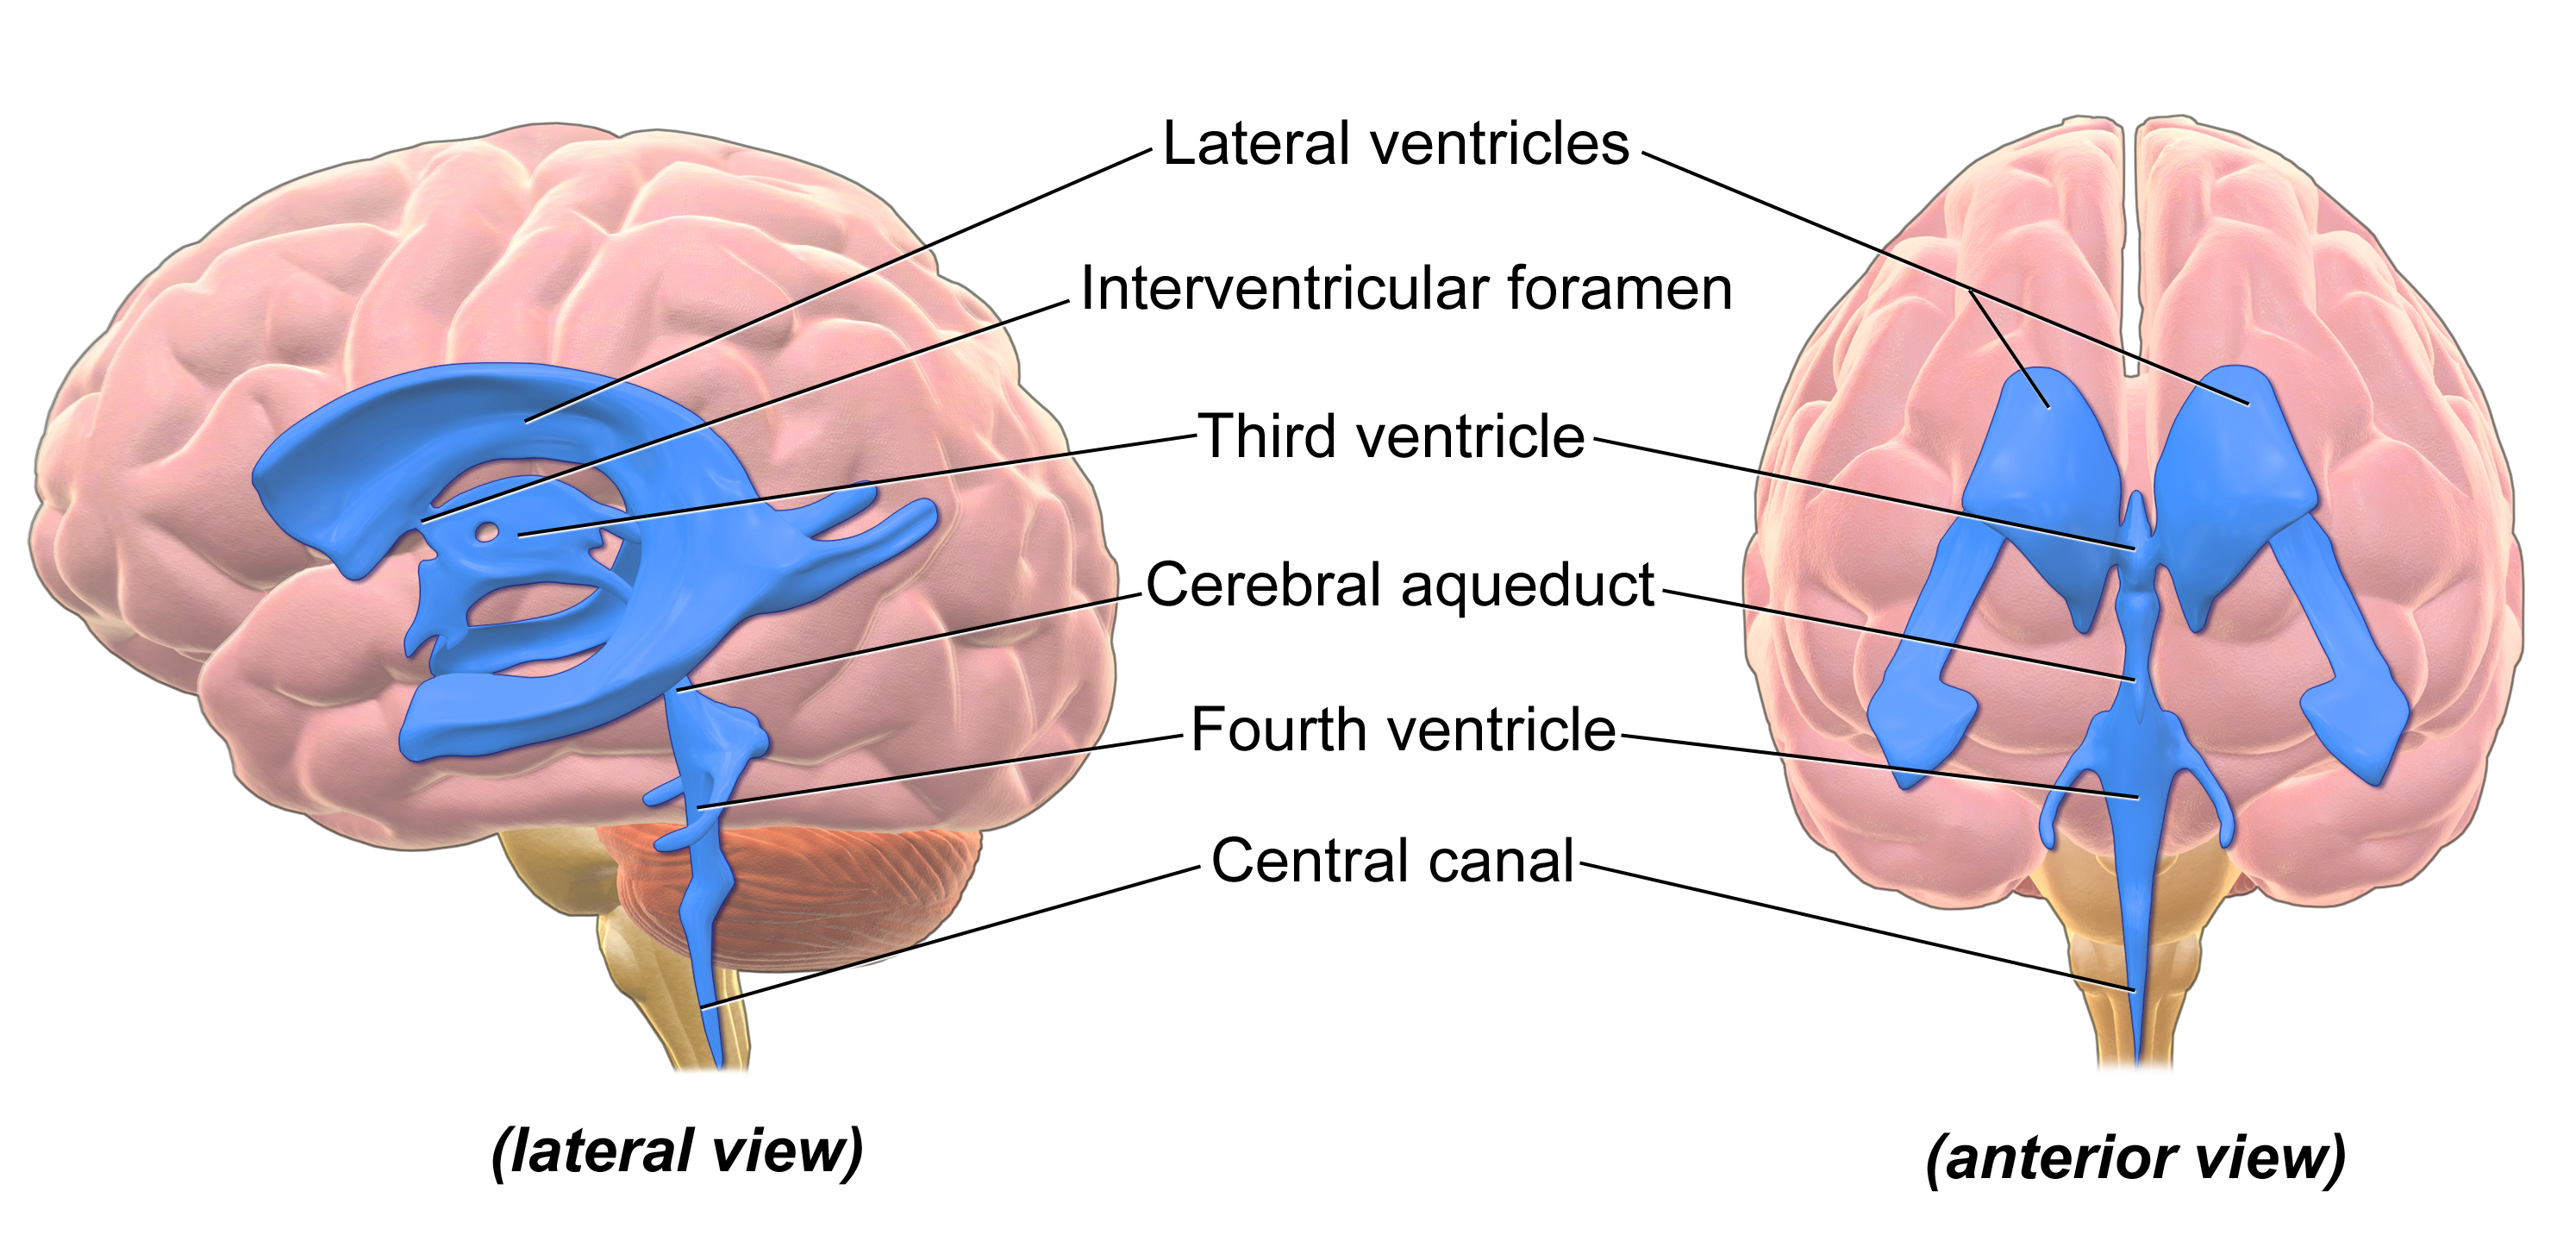 Lateral and anterior view of the ventricles represented by blue regions within the brain